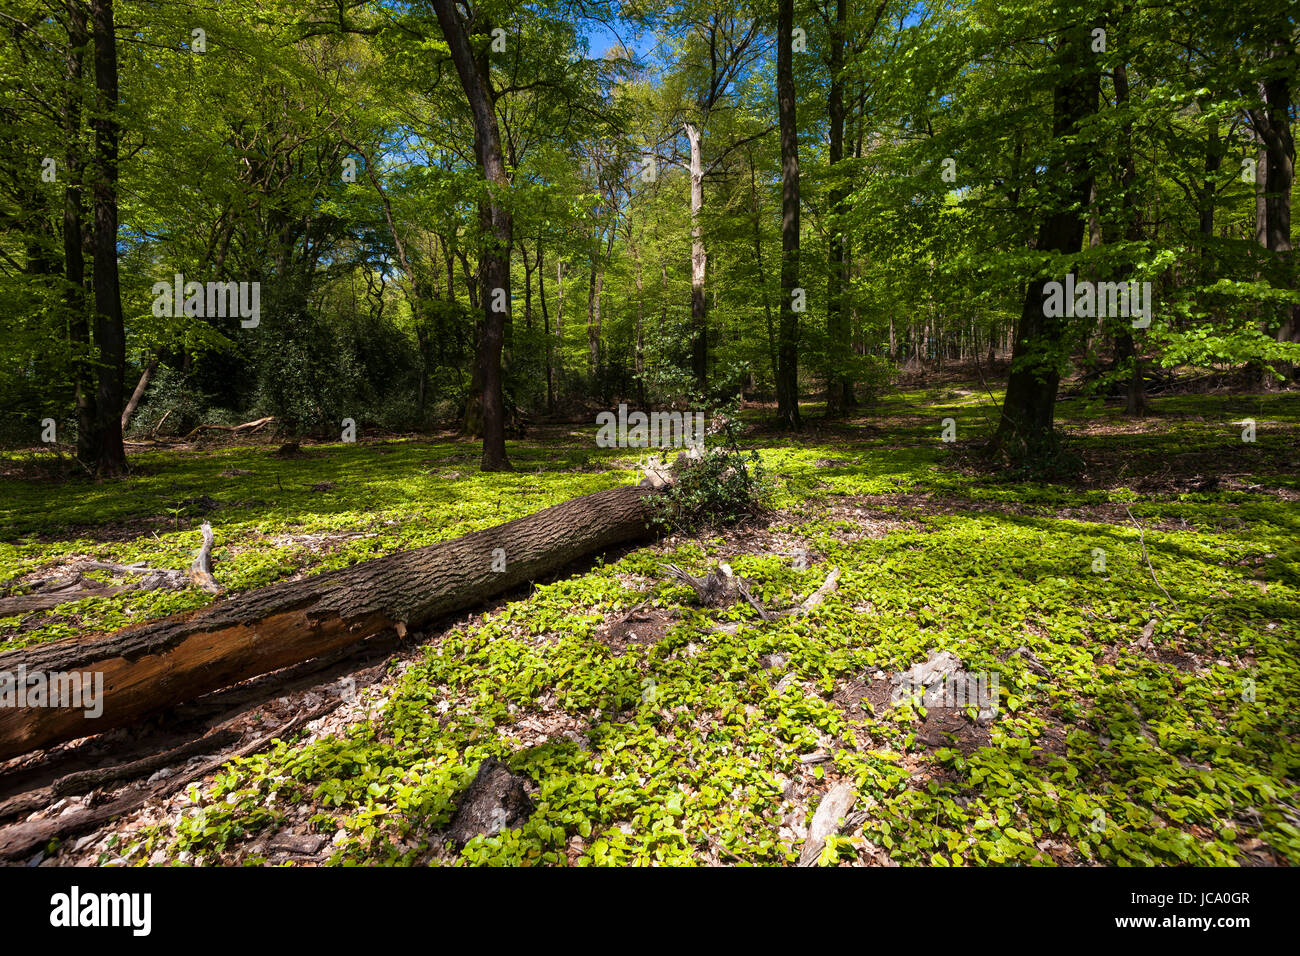 Germany, Ruhr Area, spring in a forest at the Ruhrhoehenweg in the Ardey mountains near Wetter. Stock Photo